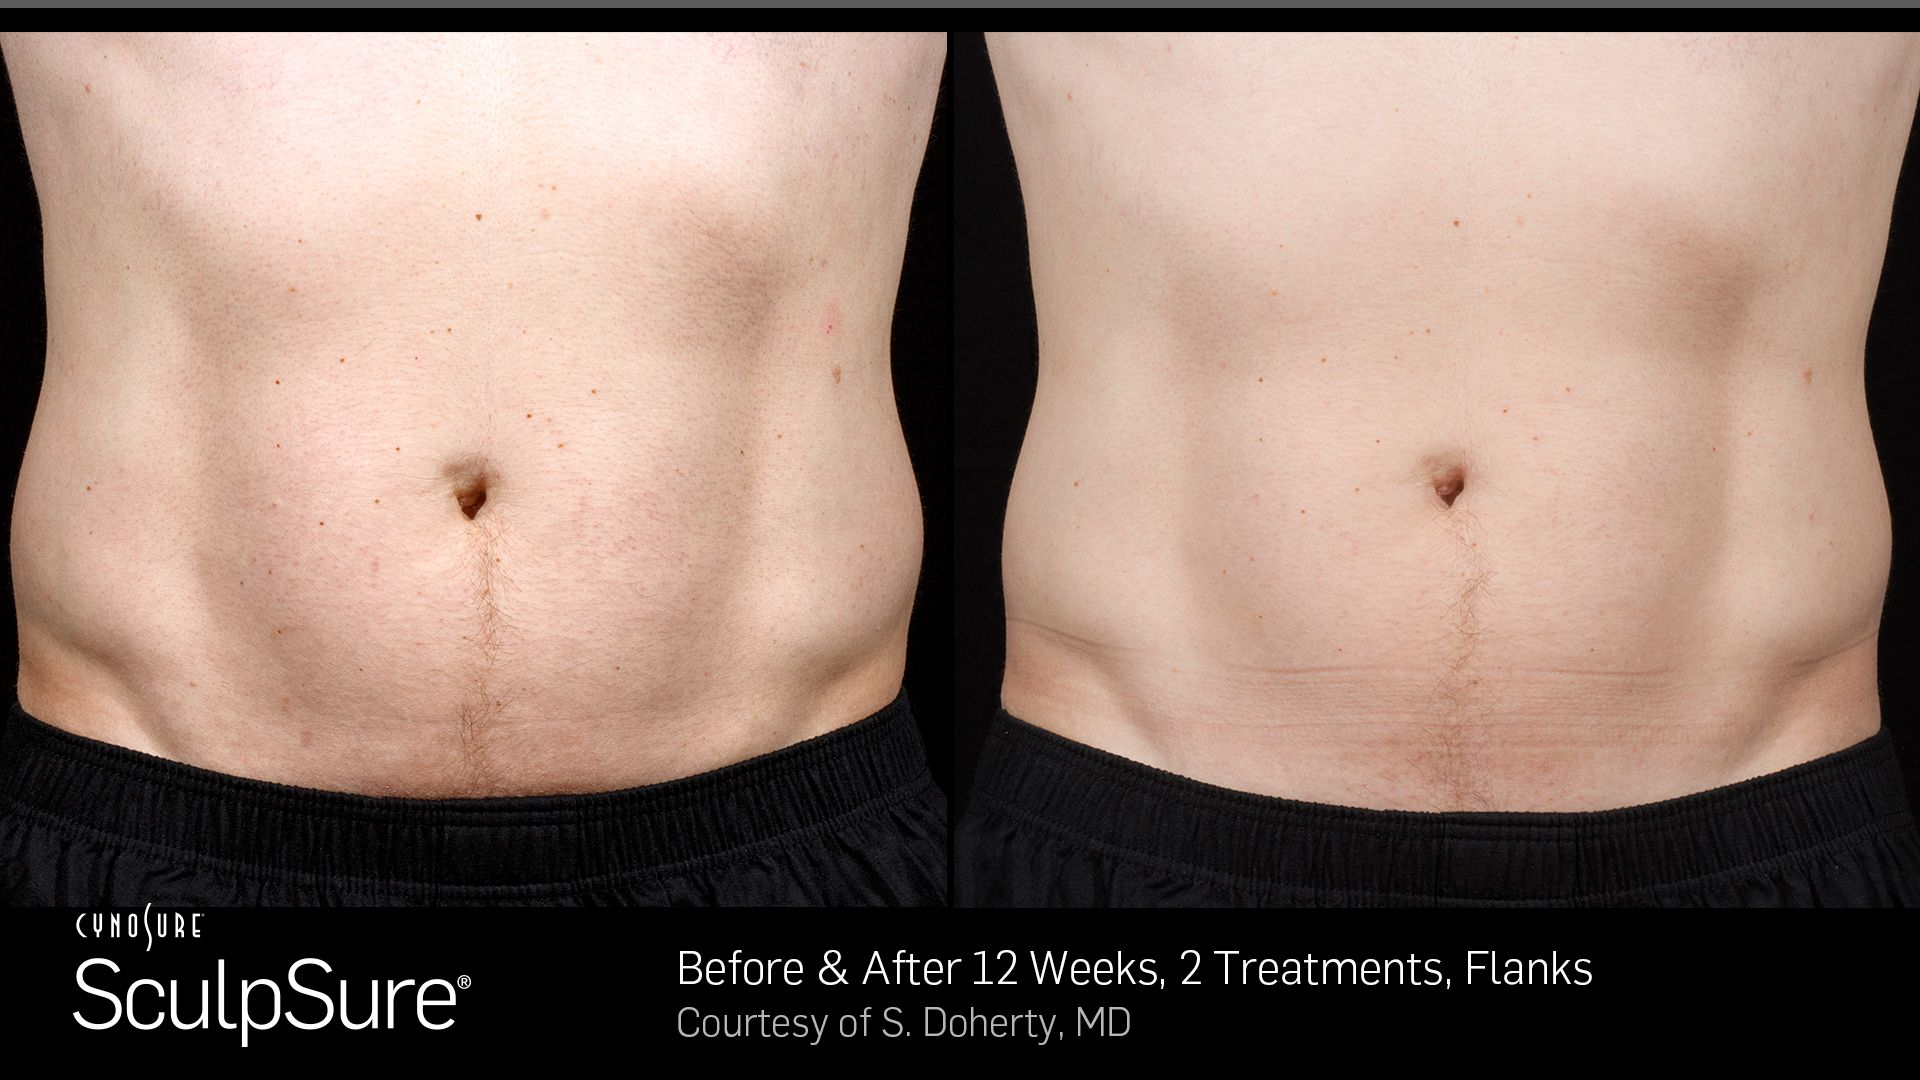 Before and After Photos 12 weeks, 2 Treatments, flanks (male patient 6, frontal view)